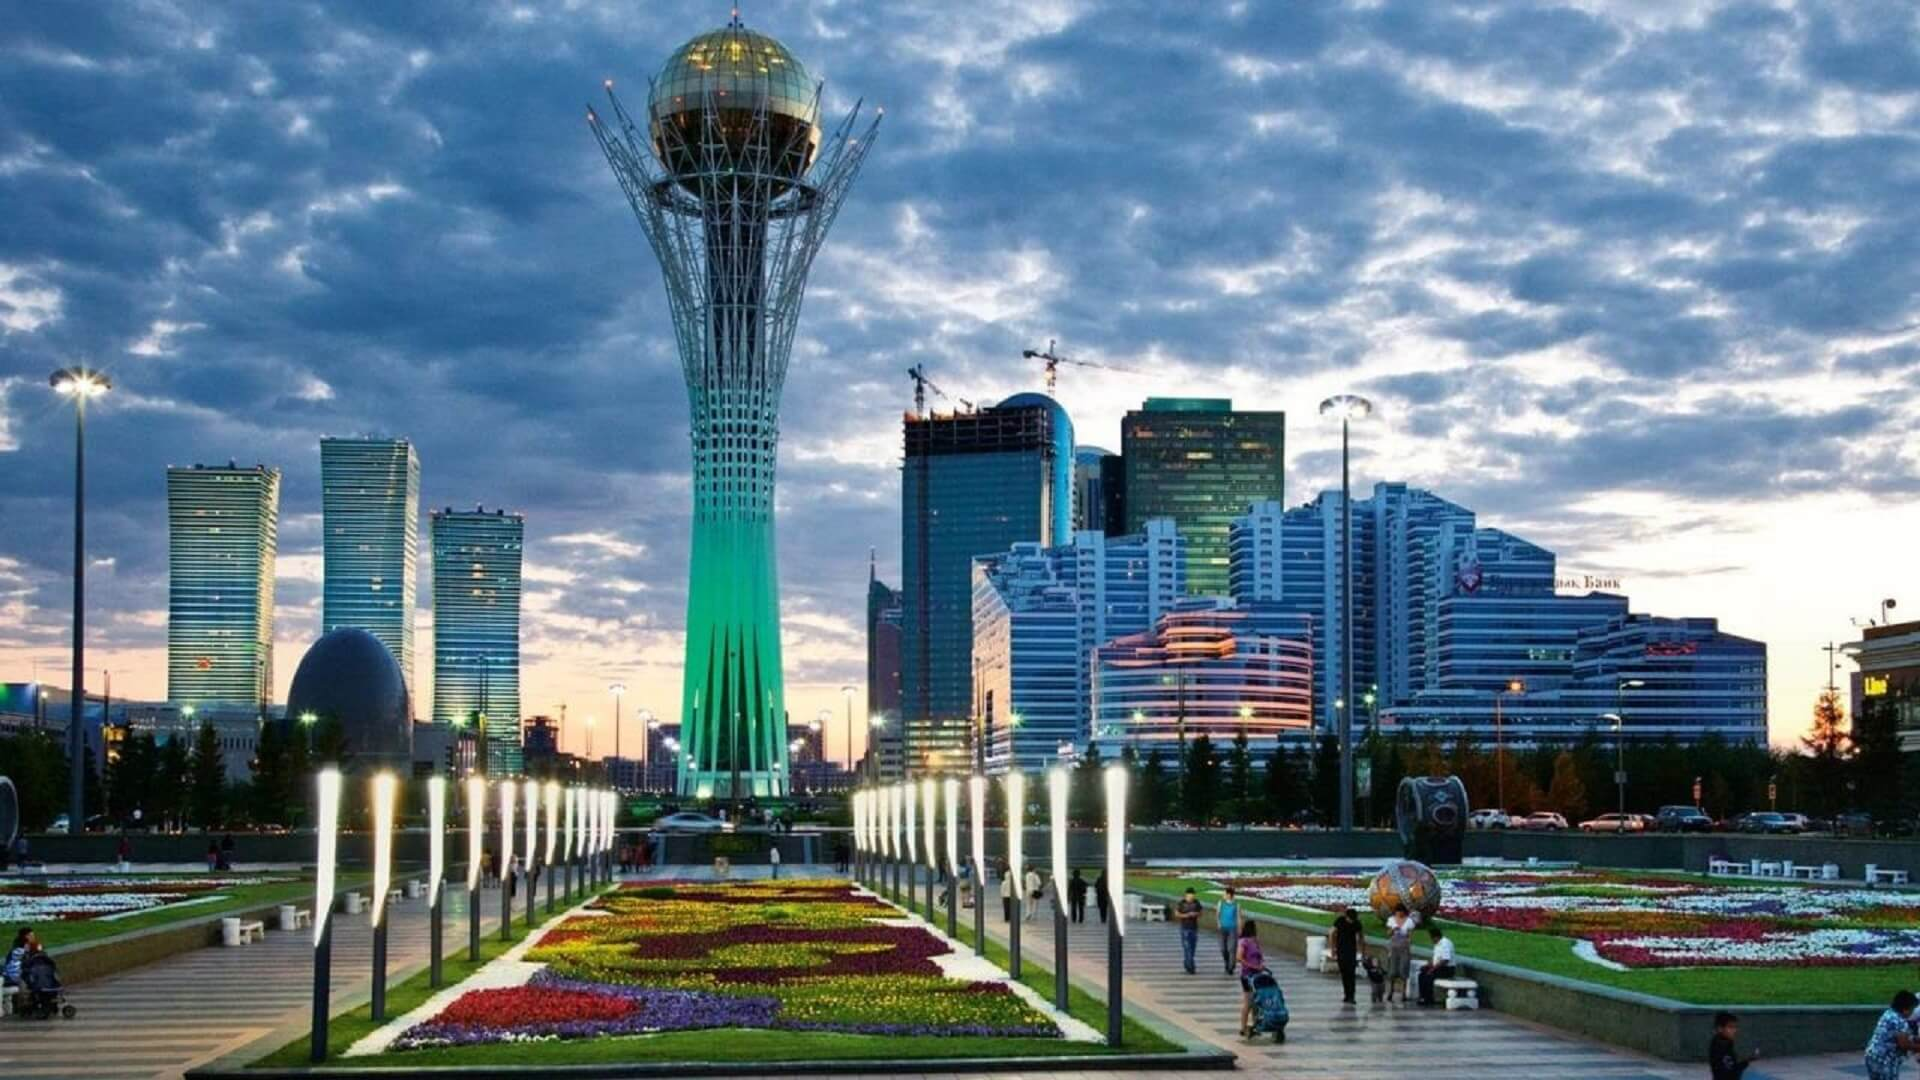 Astana and Almaty Cities: two capitals of Kazakhstan